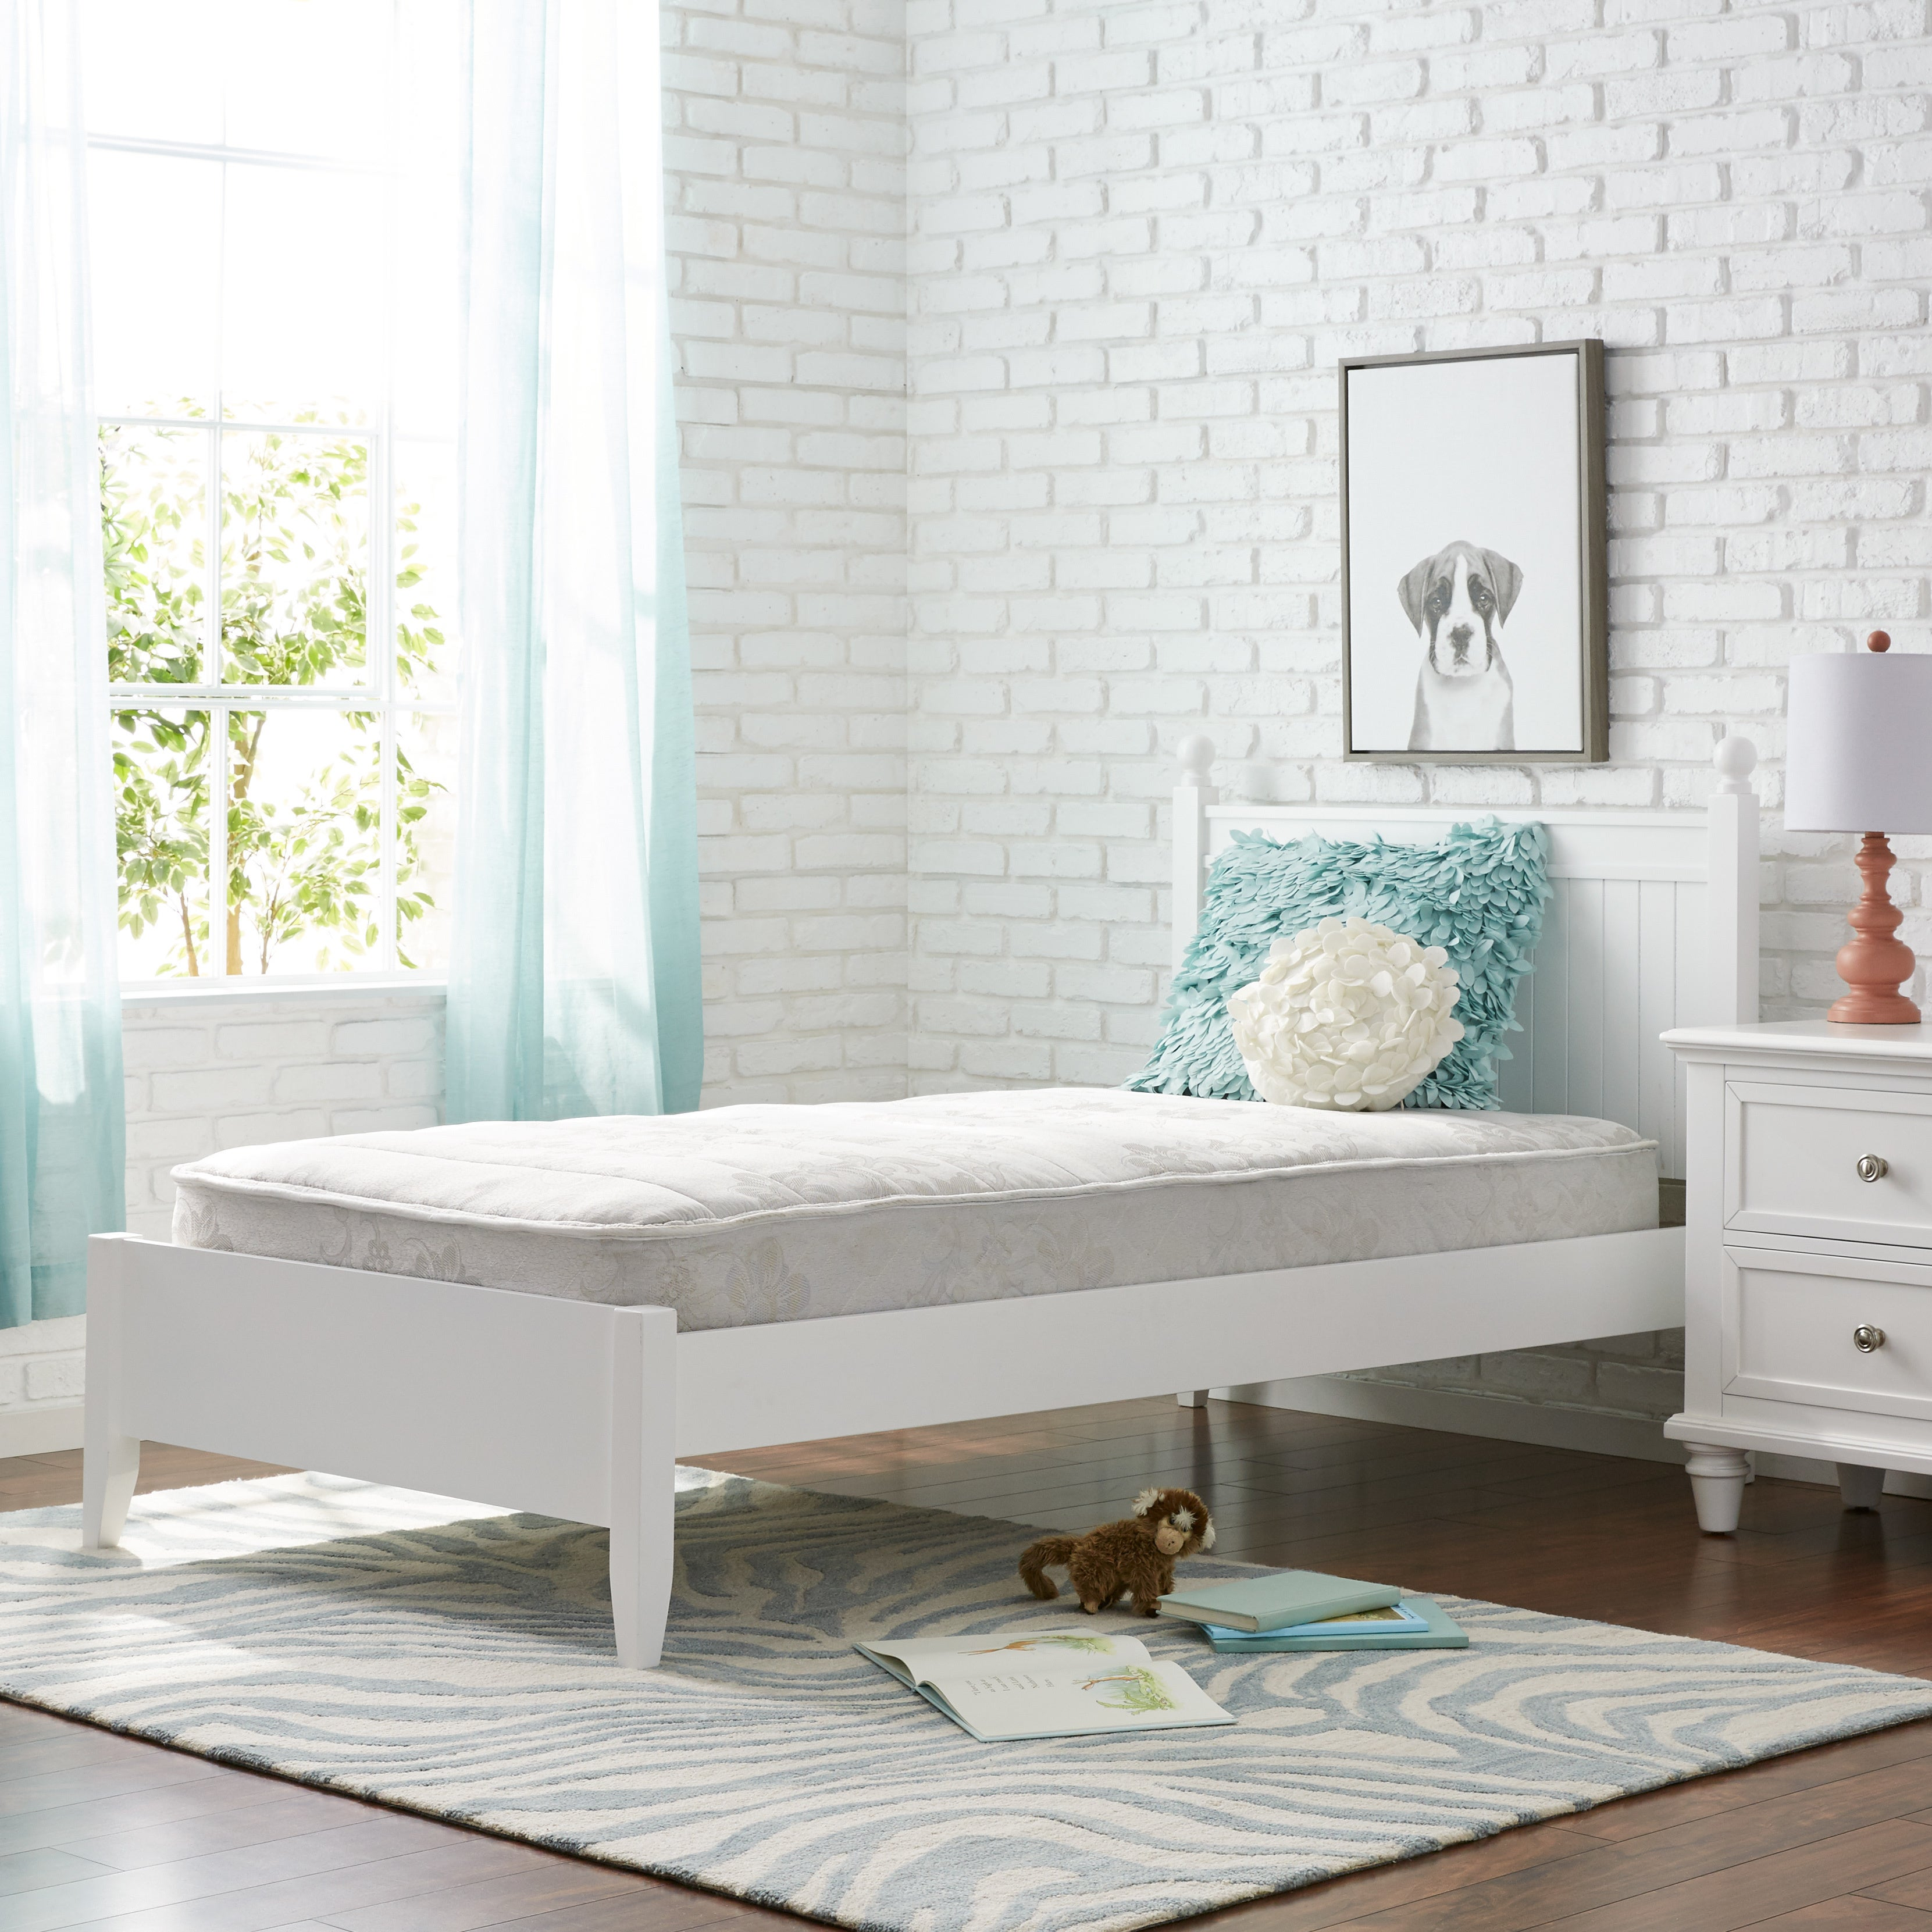 Twin-size Mattress Bed Comfort Quilted Top Mattress Slatted ...